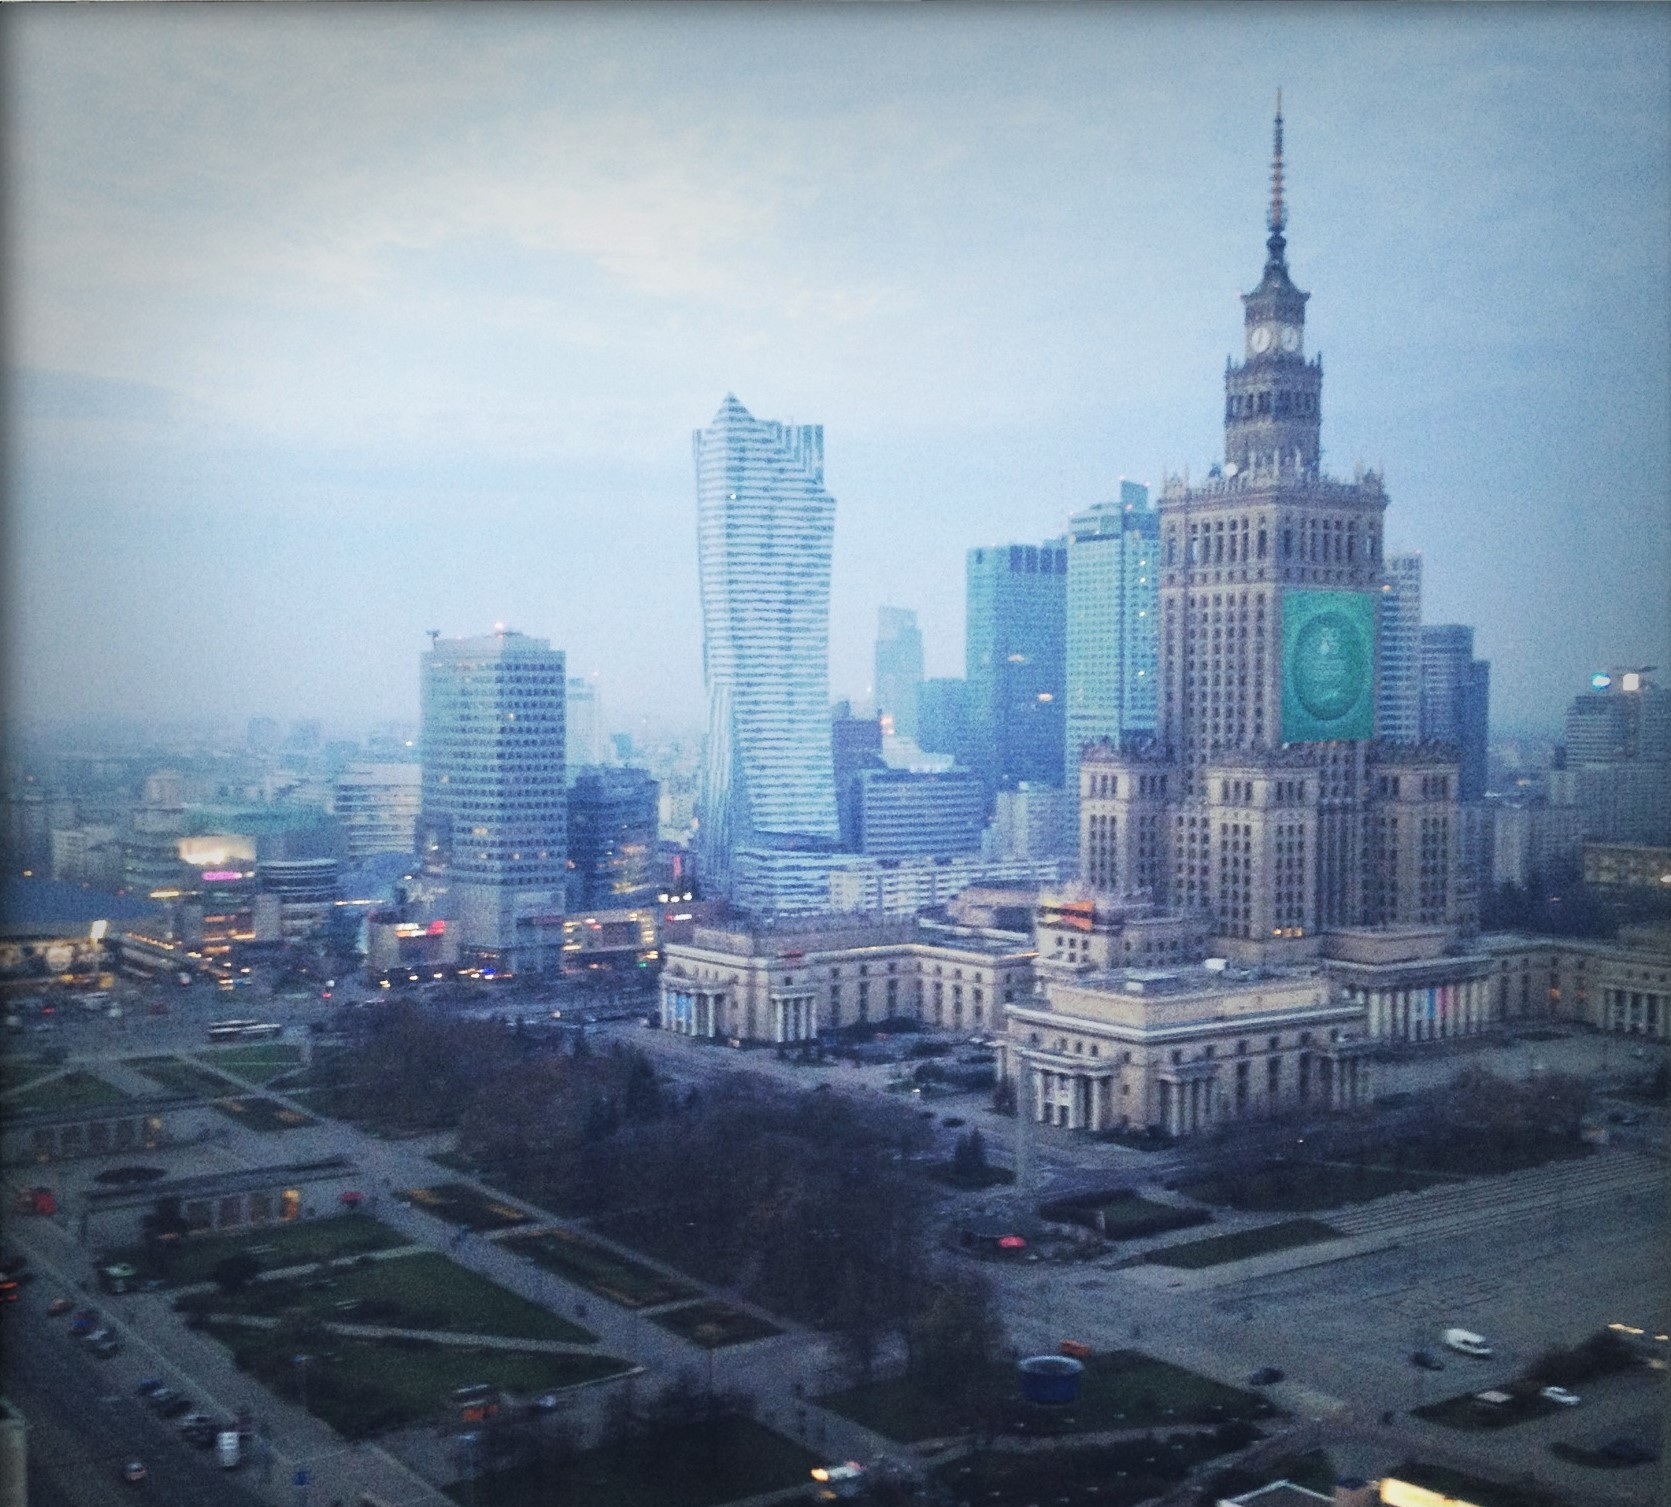 The tall spire of the Palace of Culture and Science in Warsaw, Poland -